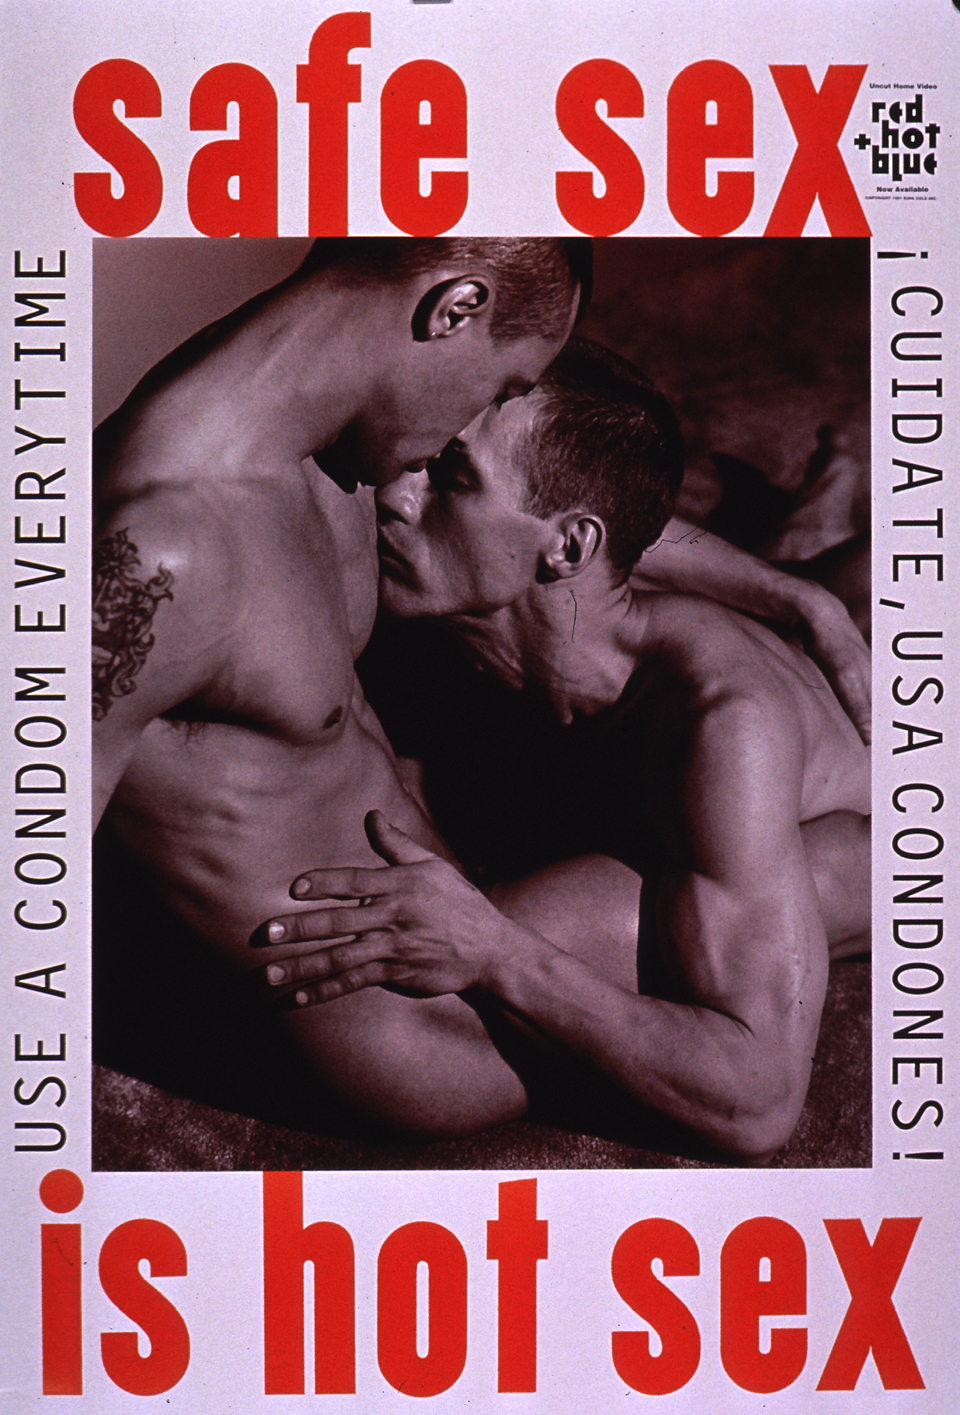 Predominantly white poster with black and orange lettering. Initial title words at top of poster. Publisher information, along with an advertisement for a video, in upper right corner. Visual image is a black and white photo reproduction featuring a male-male couple kissing. Remaining title text below photo. English caption of left side of poster; Spanish caption on right.